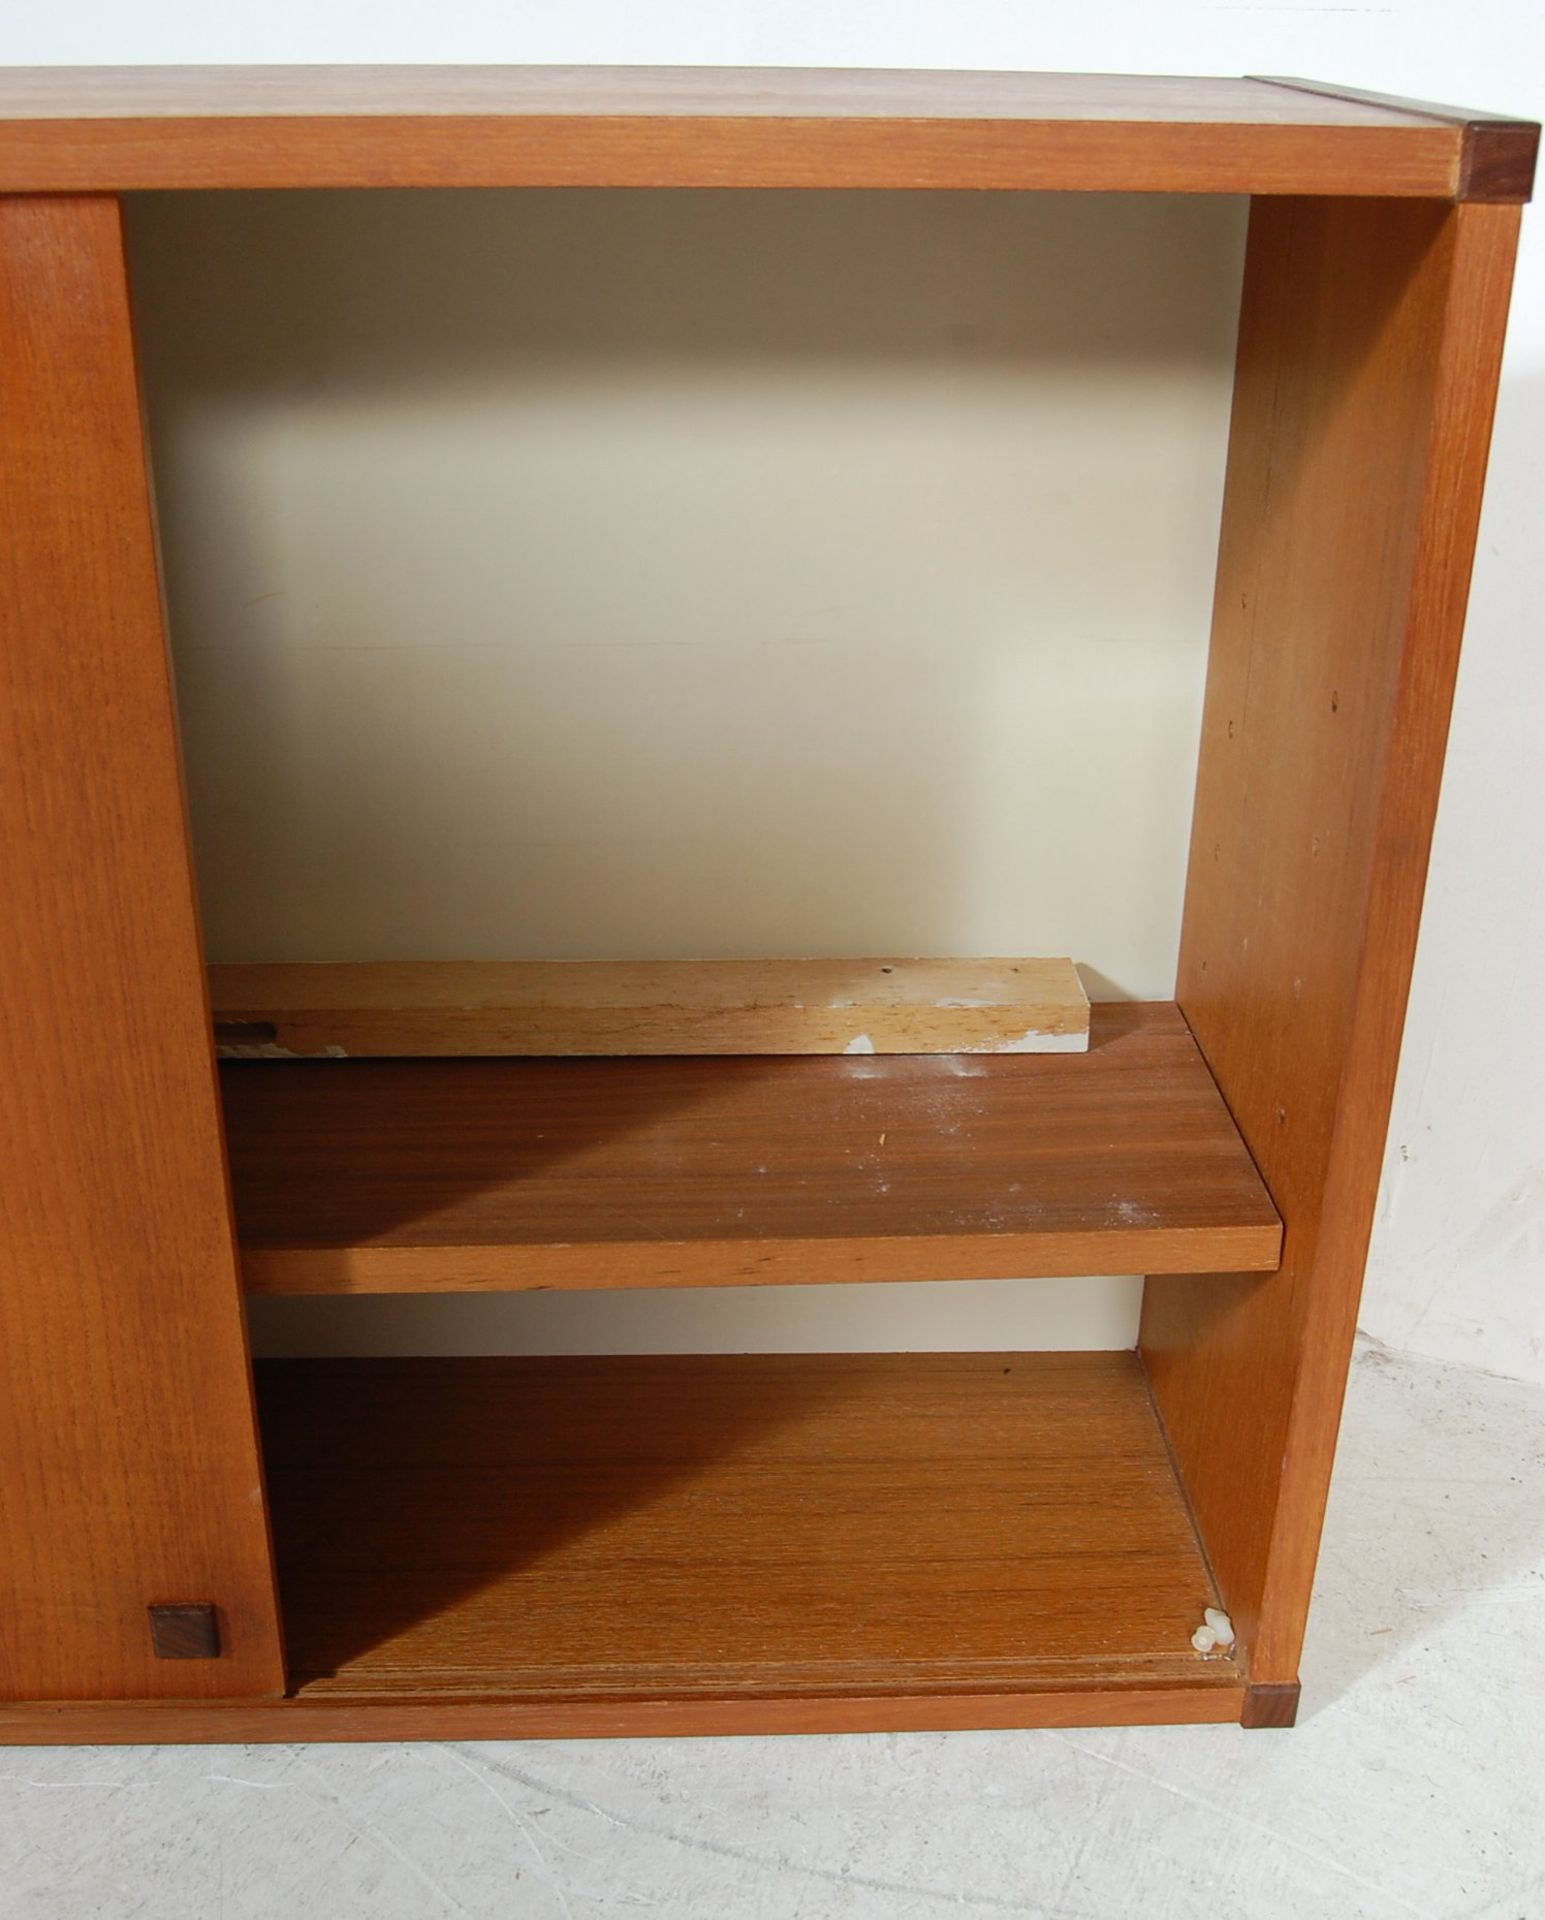 MID CENTURY WALL MOUNTED PS SYSTEM TYPE TEAK CABINET - Image 4 of 4